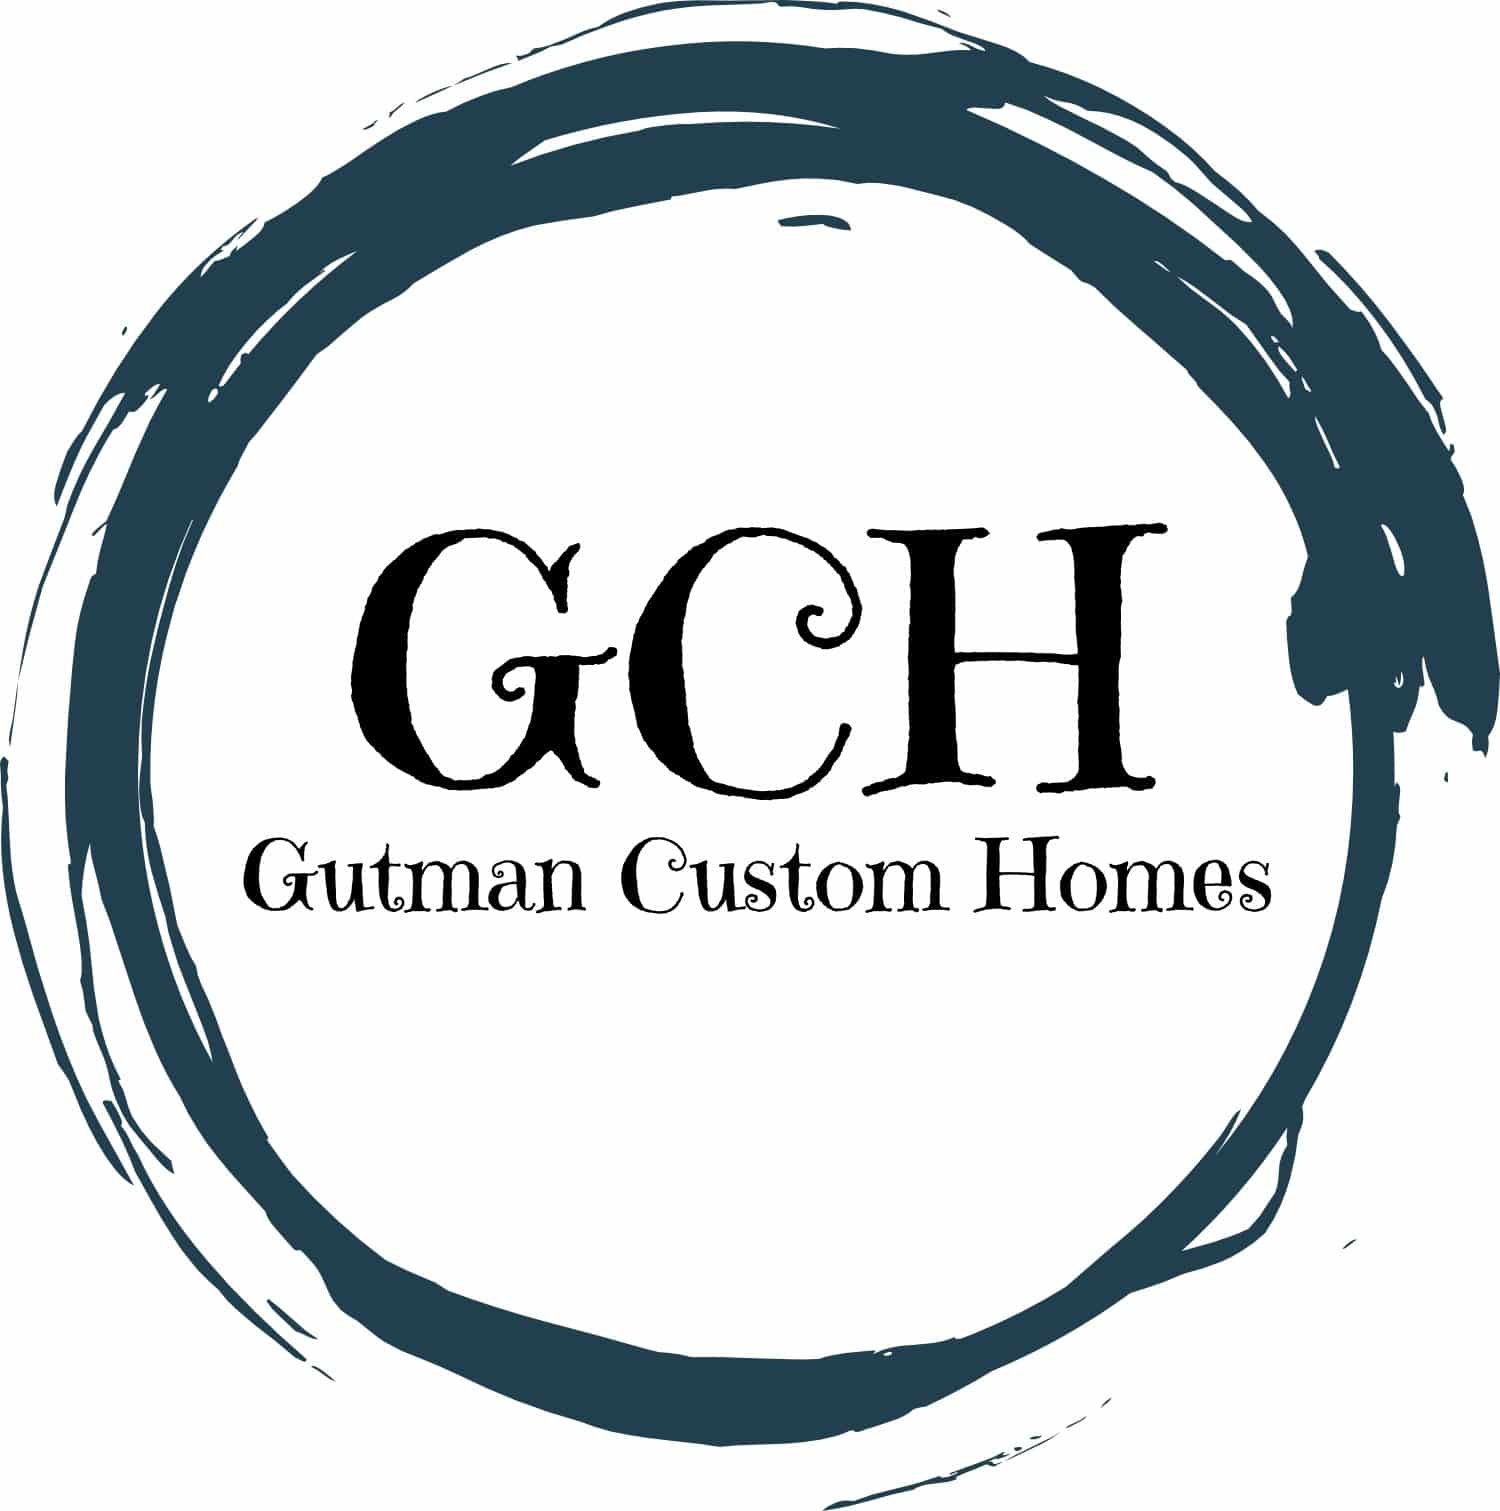 Gutman Custom Homes